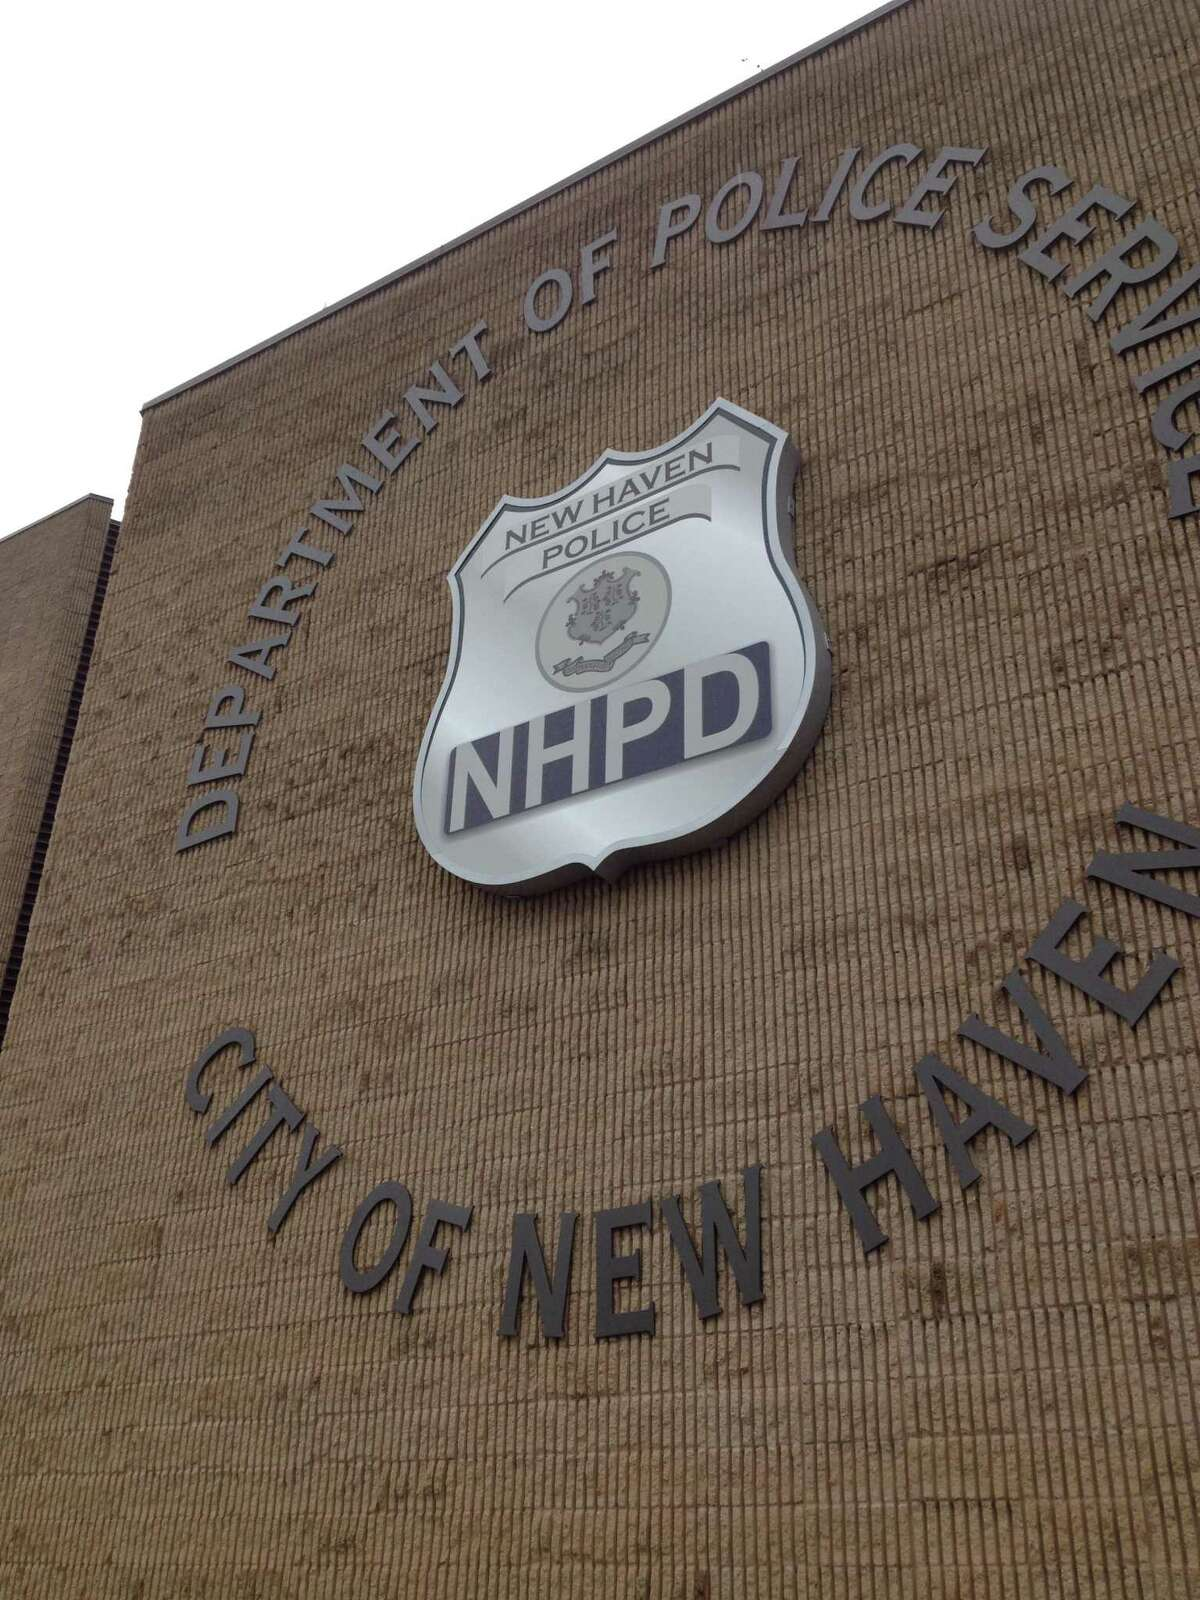 New Haven Police Department, 1 Union Ave., New Haven